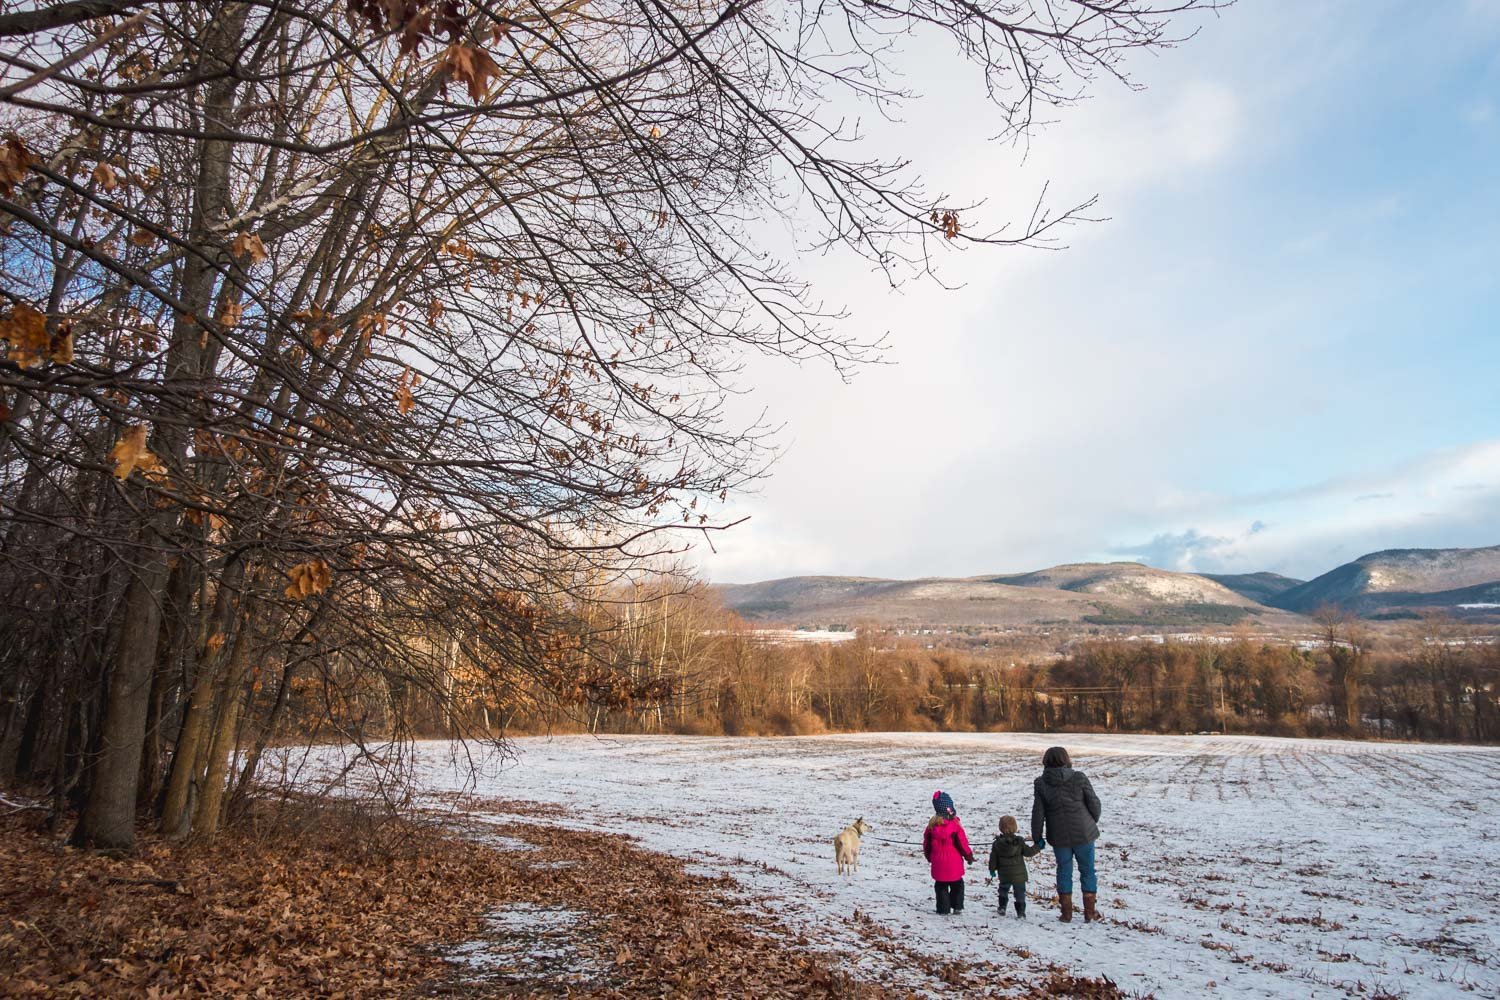 Children and grandmother walk across a snowy field.